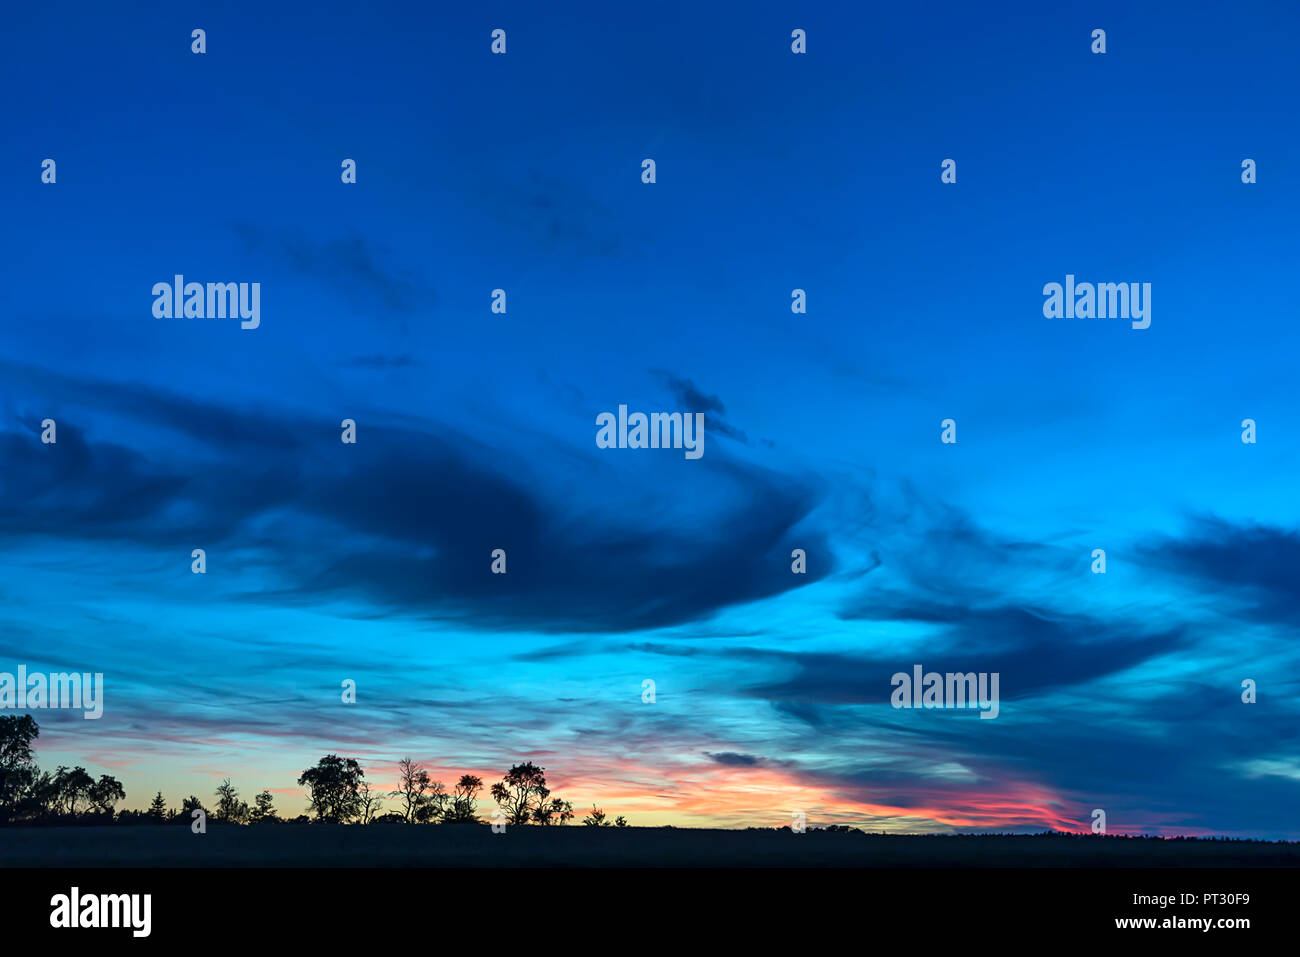 Tree silouettes with dark clouds at sunset, Bavaria, Germany - Stock Image